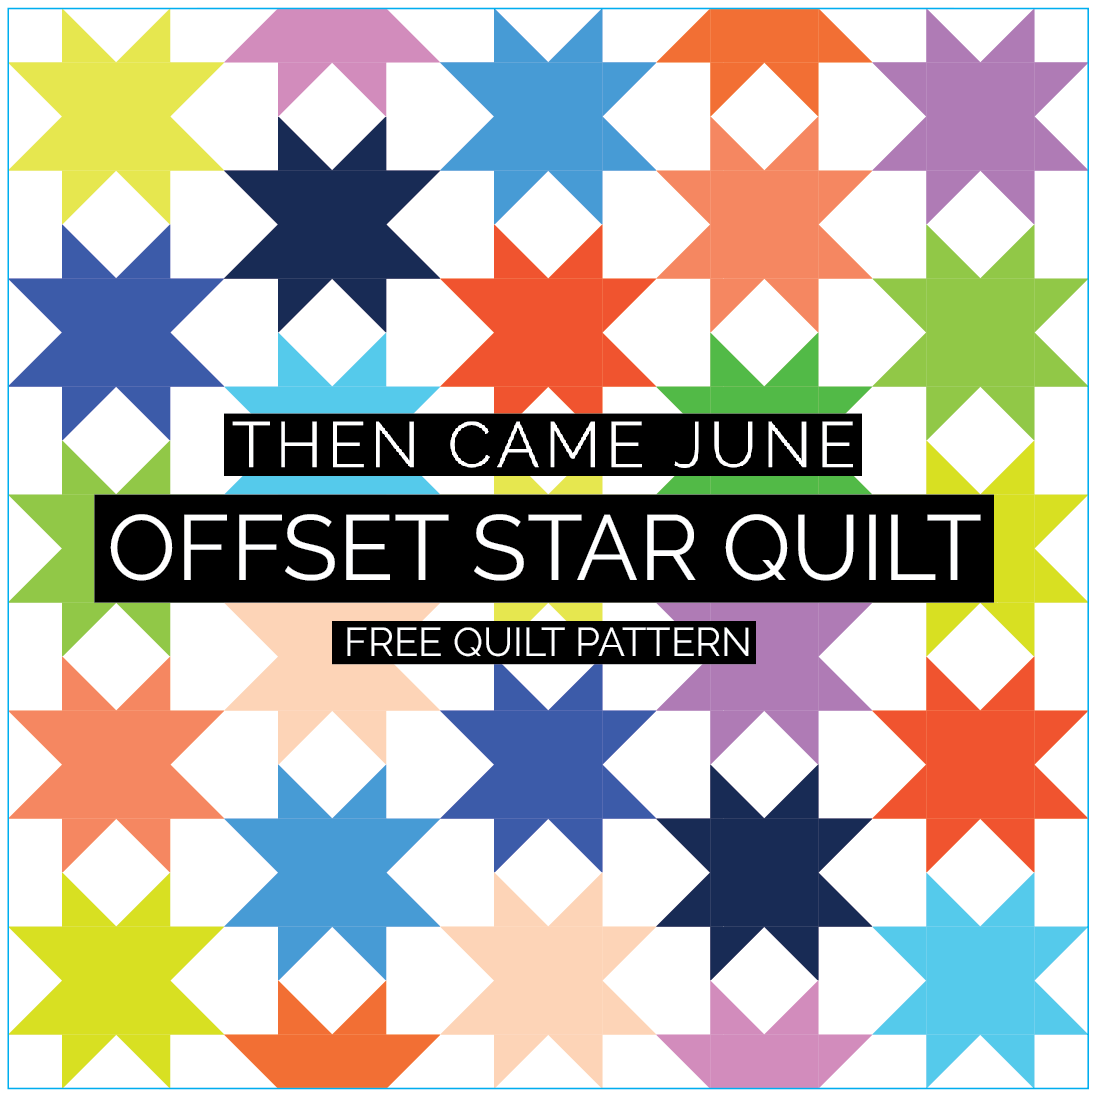 Offset Star Quilt Free Pattern Then Came June